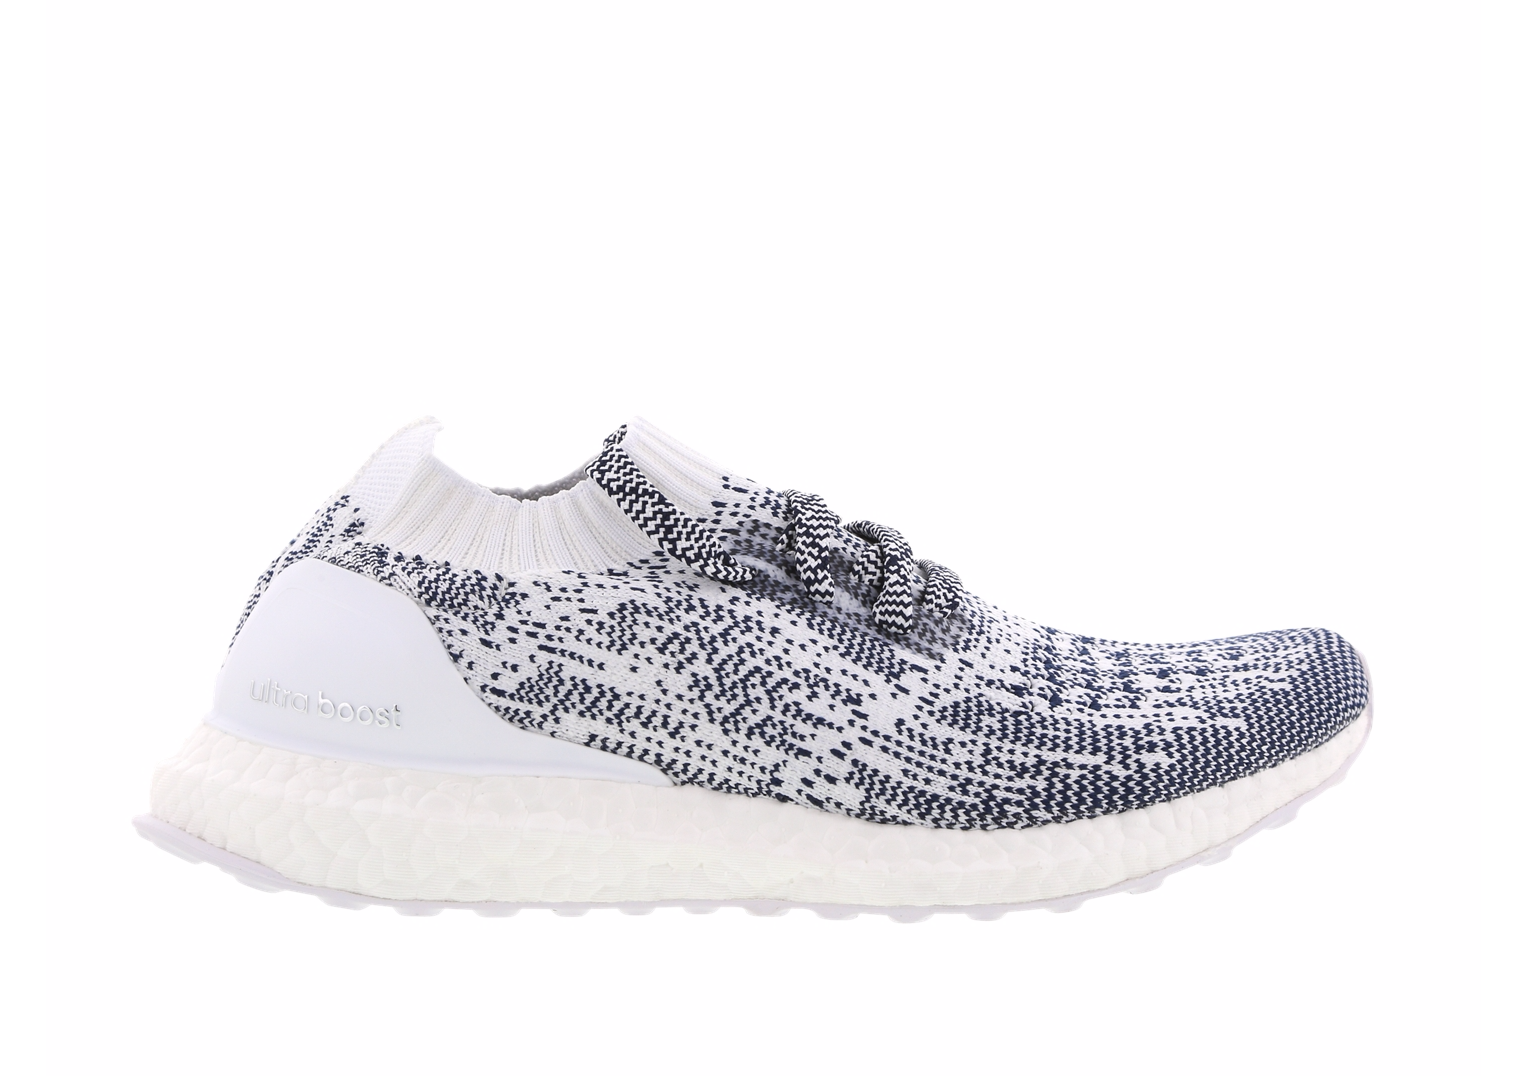 adidas Ultra Boost Uncaged Damen Schuhe